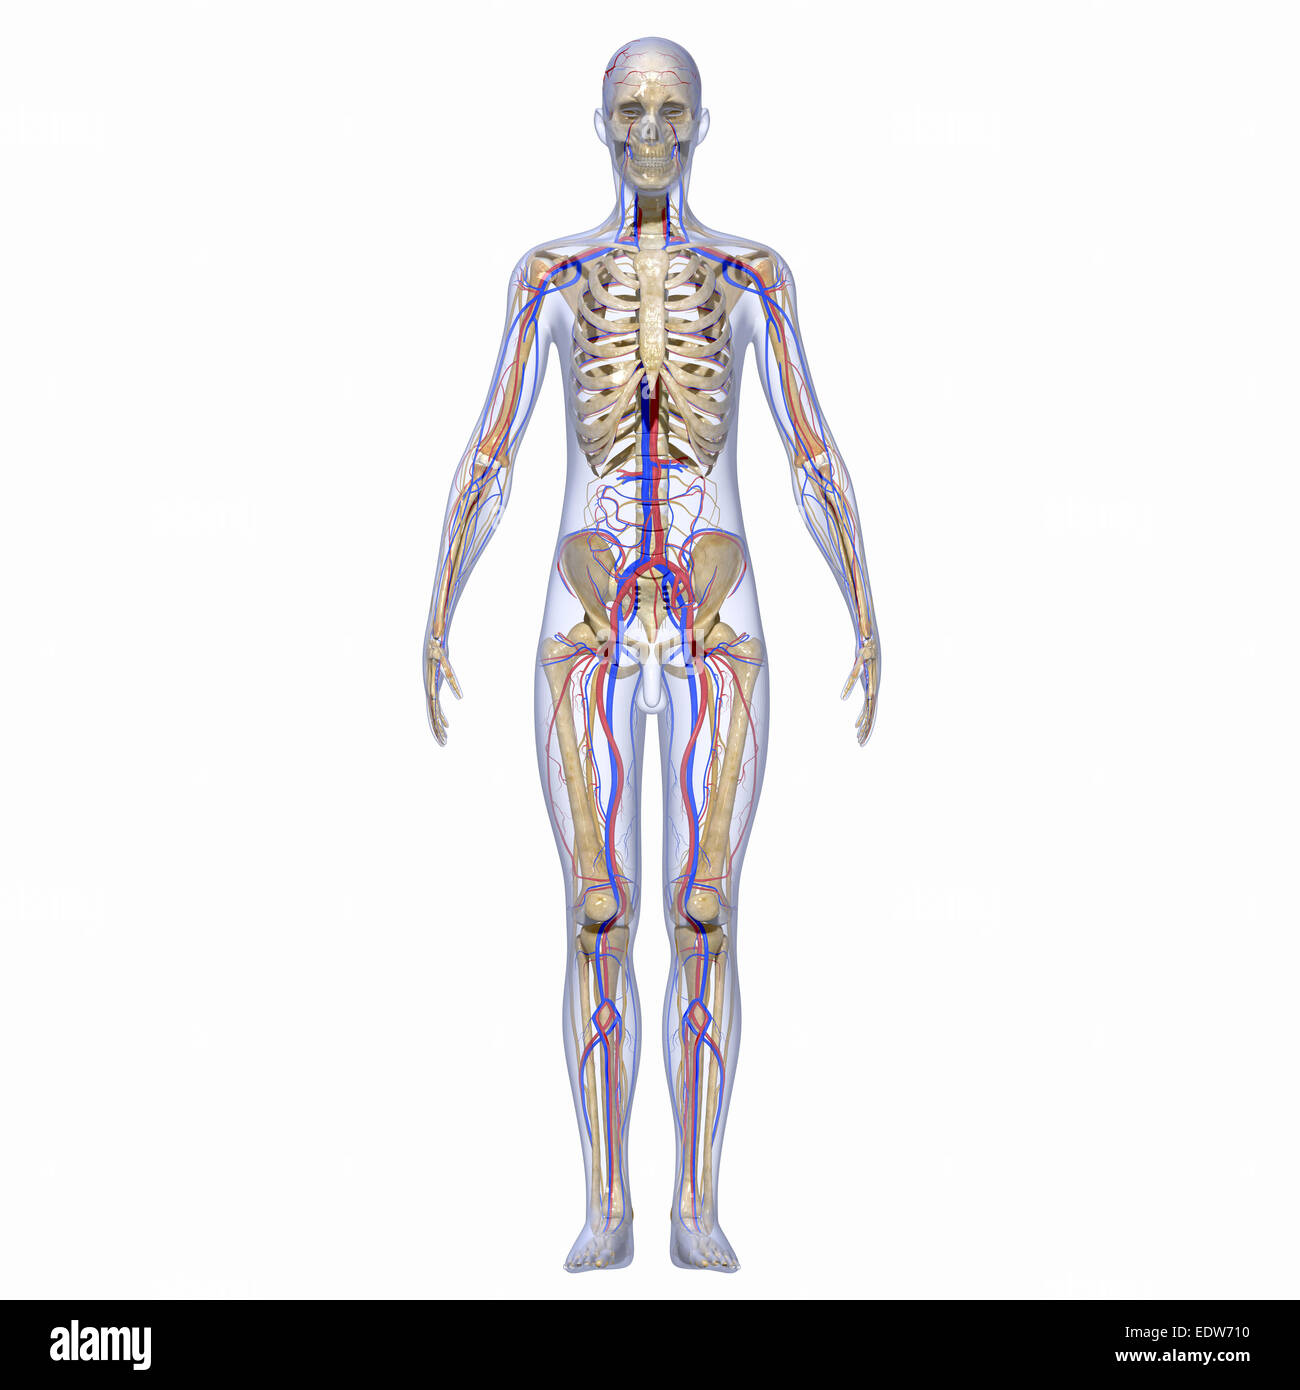 Skeleton and nervous system Stock Photo: 77386316 - Alamy